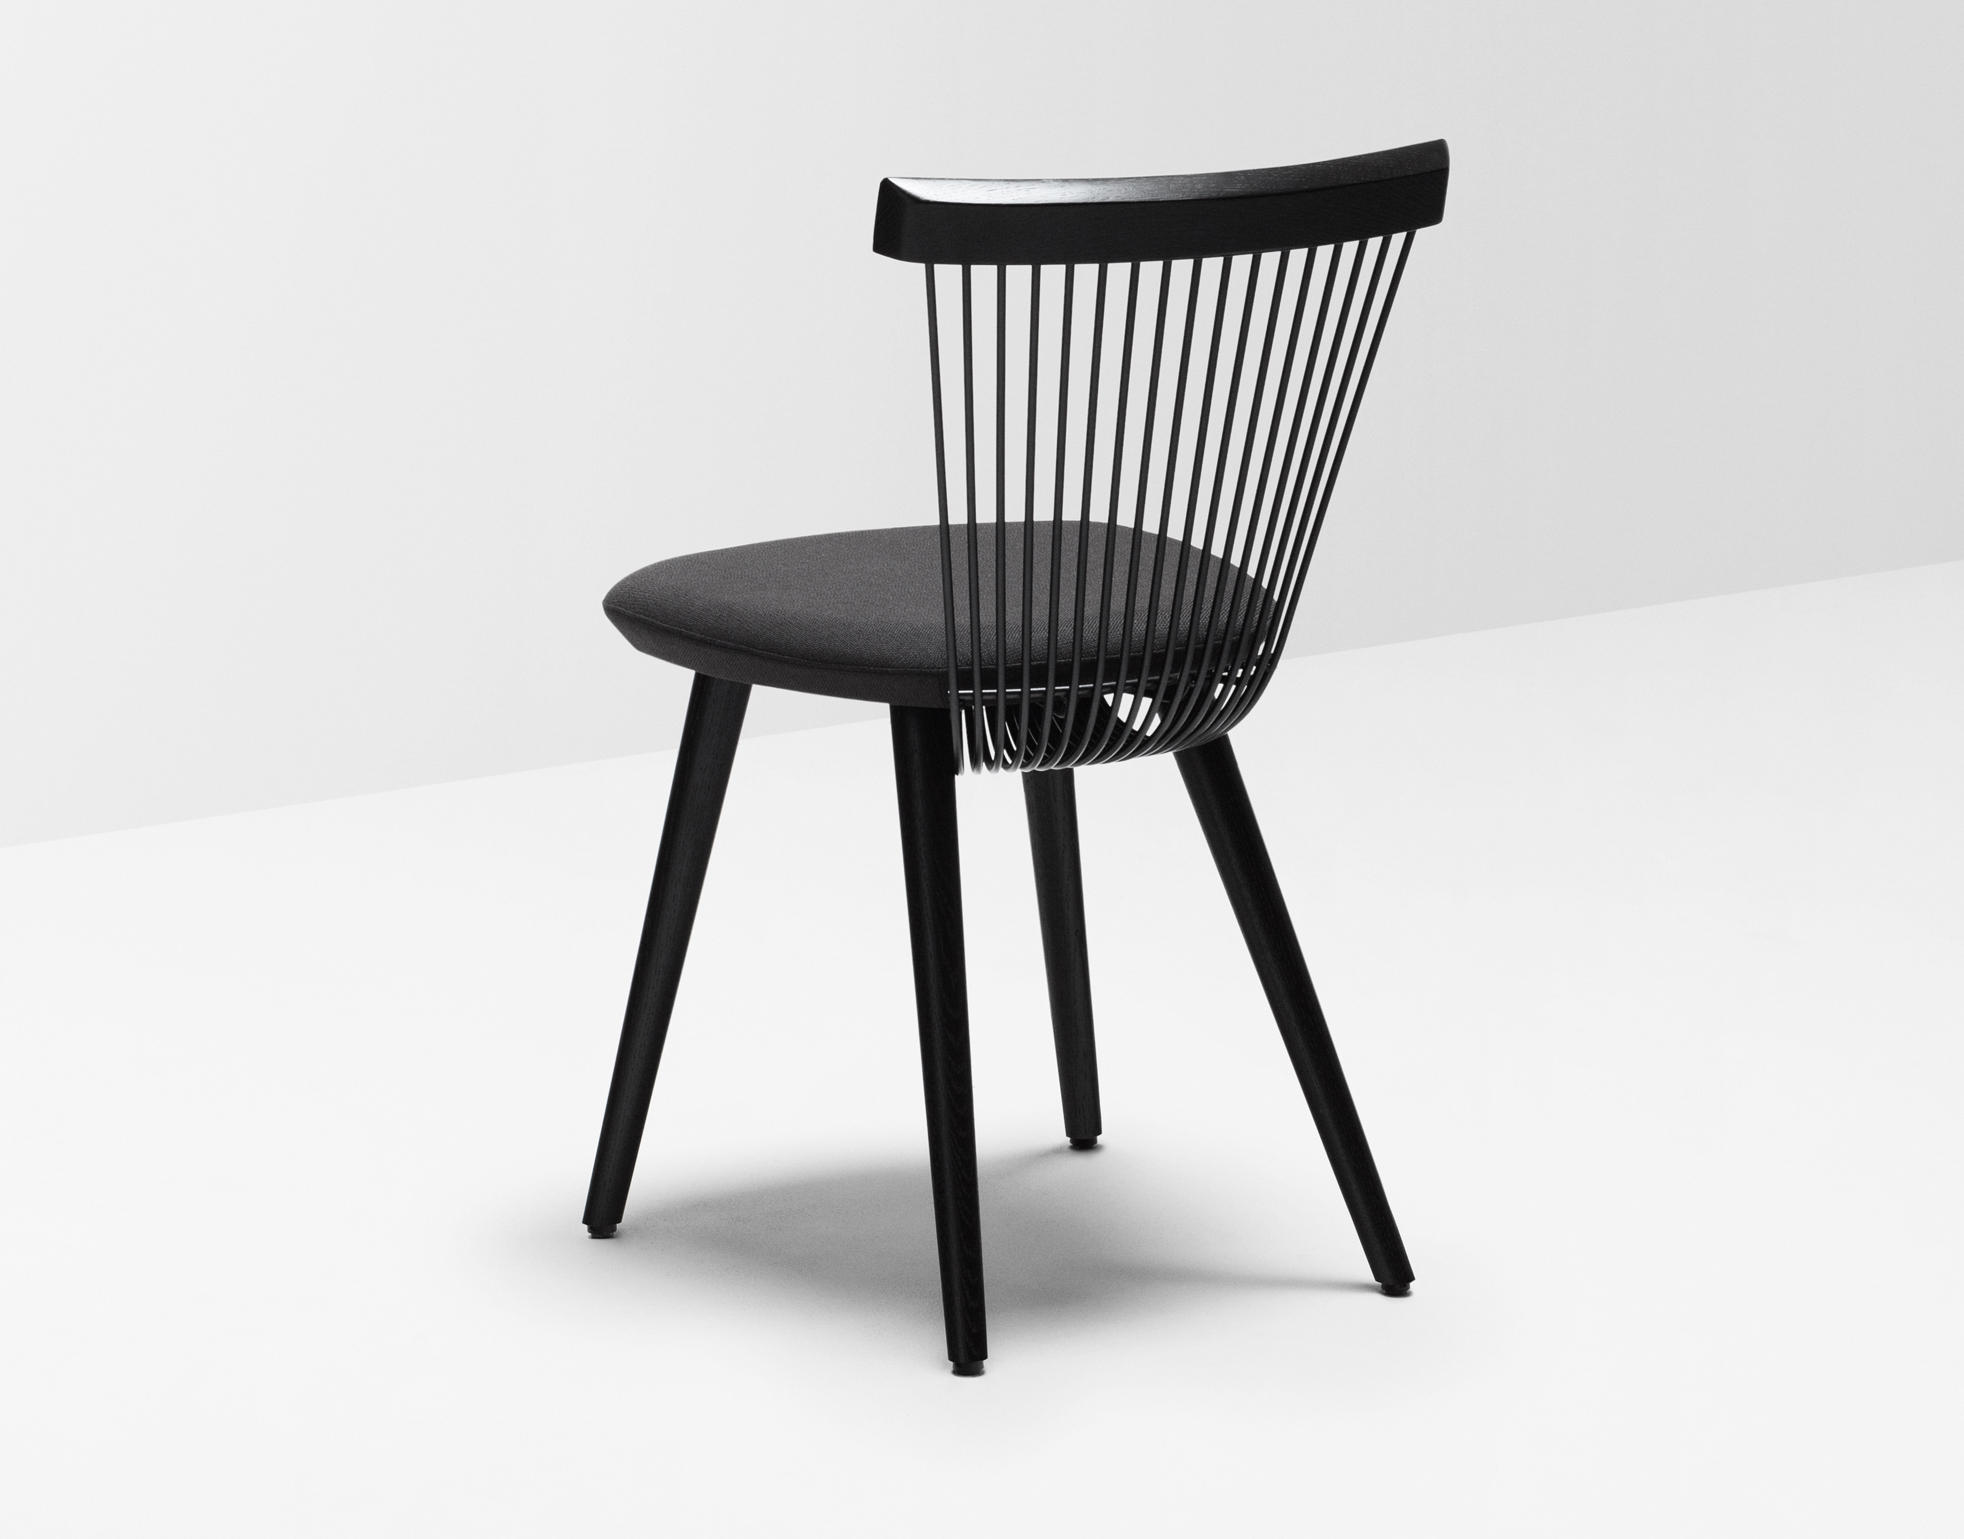 Ww chair upholstered restaurant chairs from h furniture for H furniture ww chair